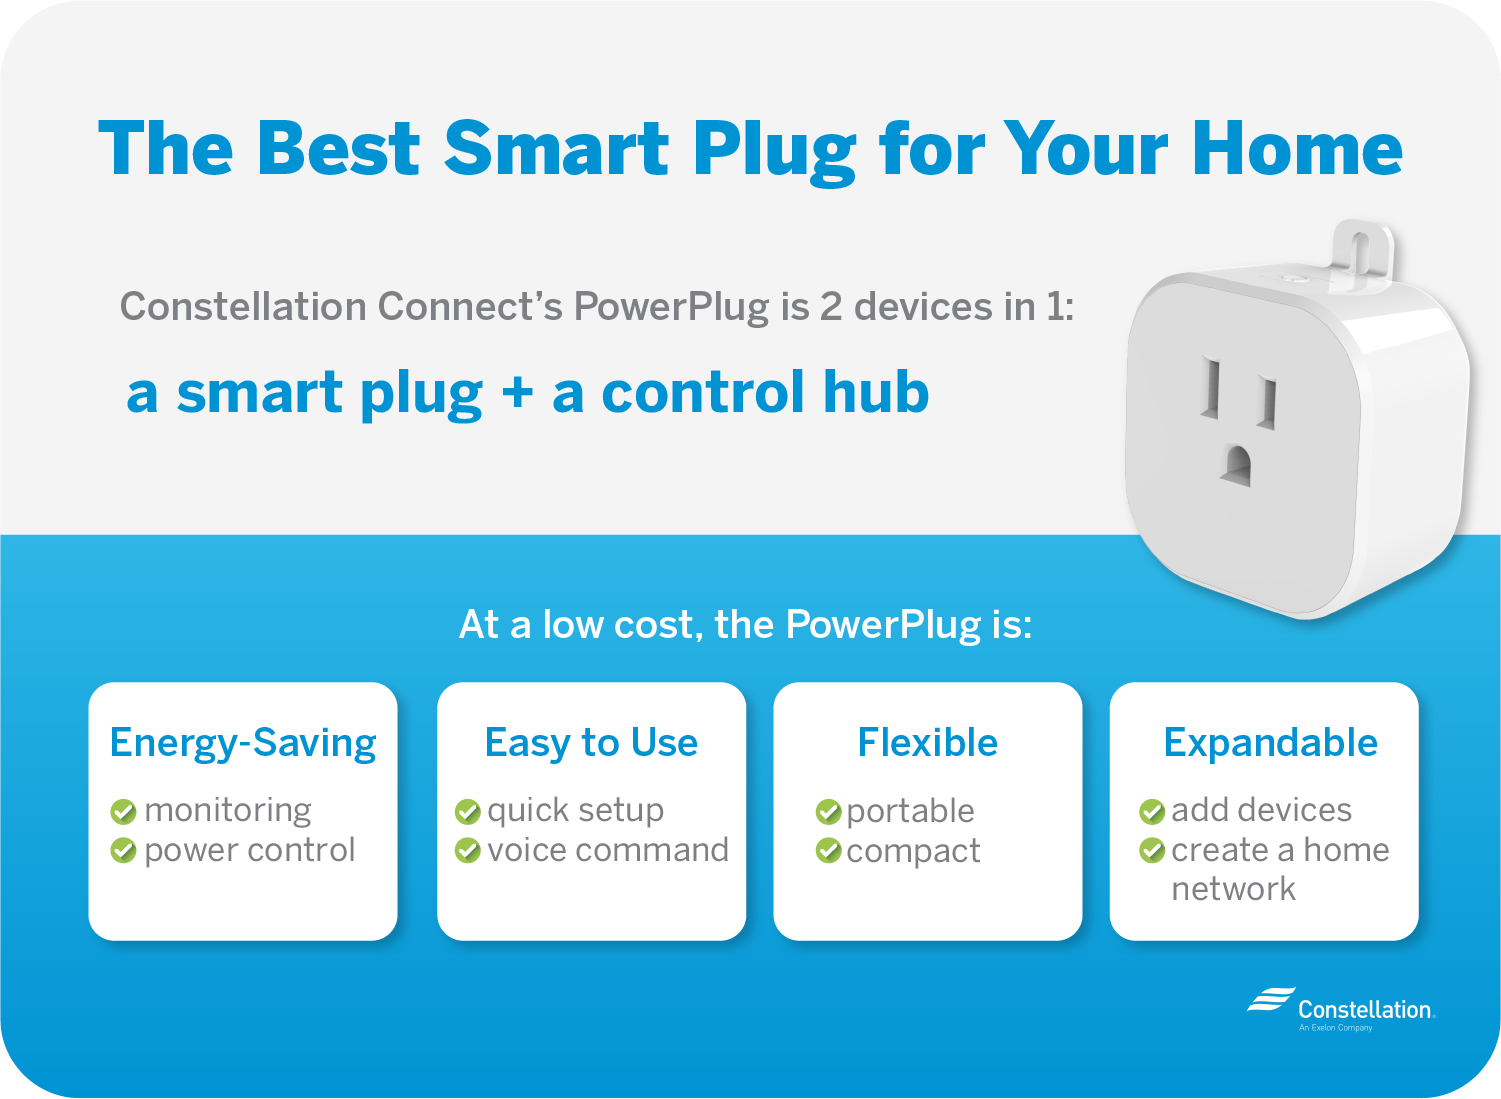 Best smart plug for your home